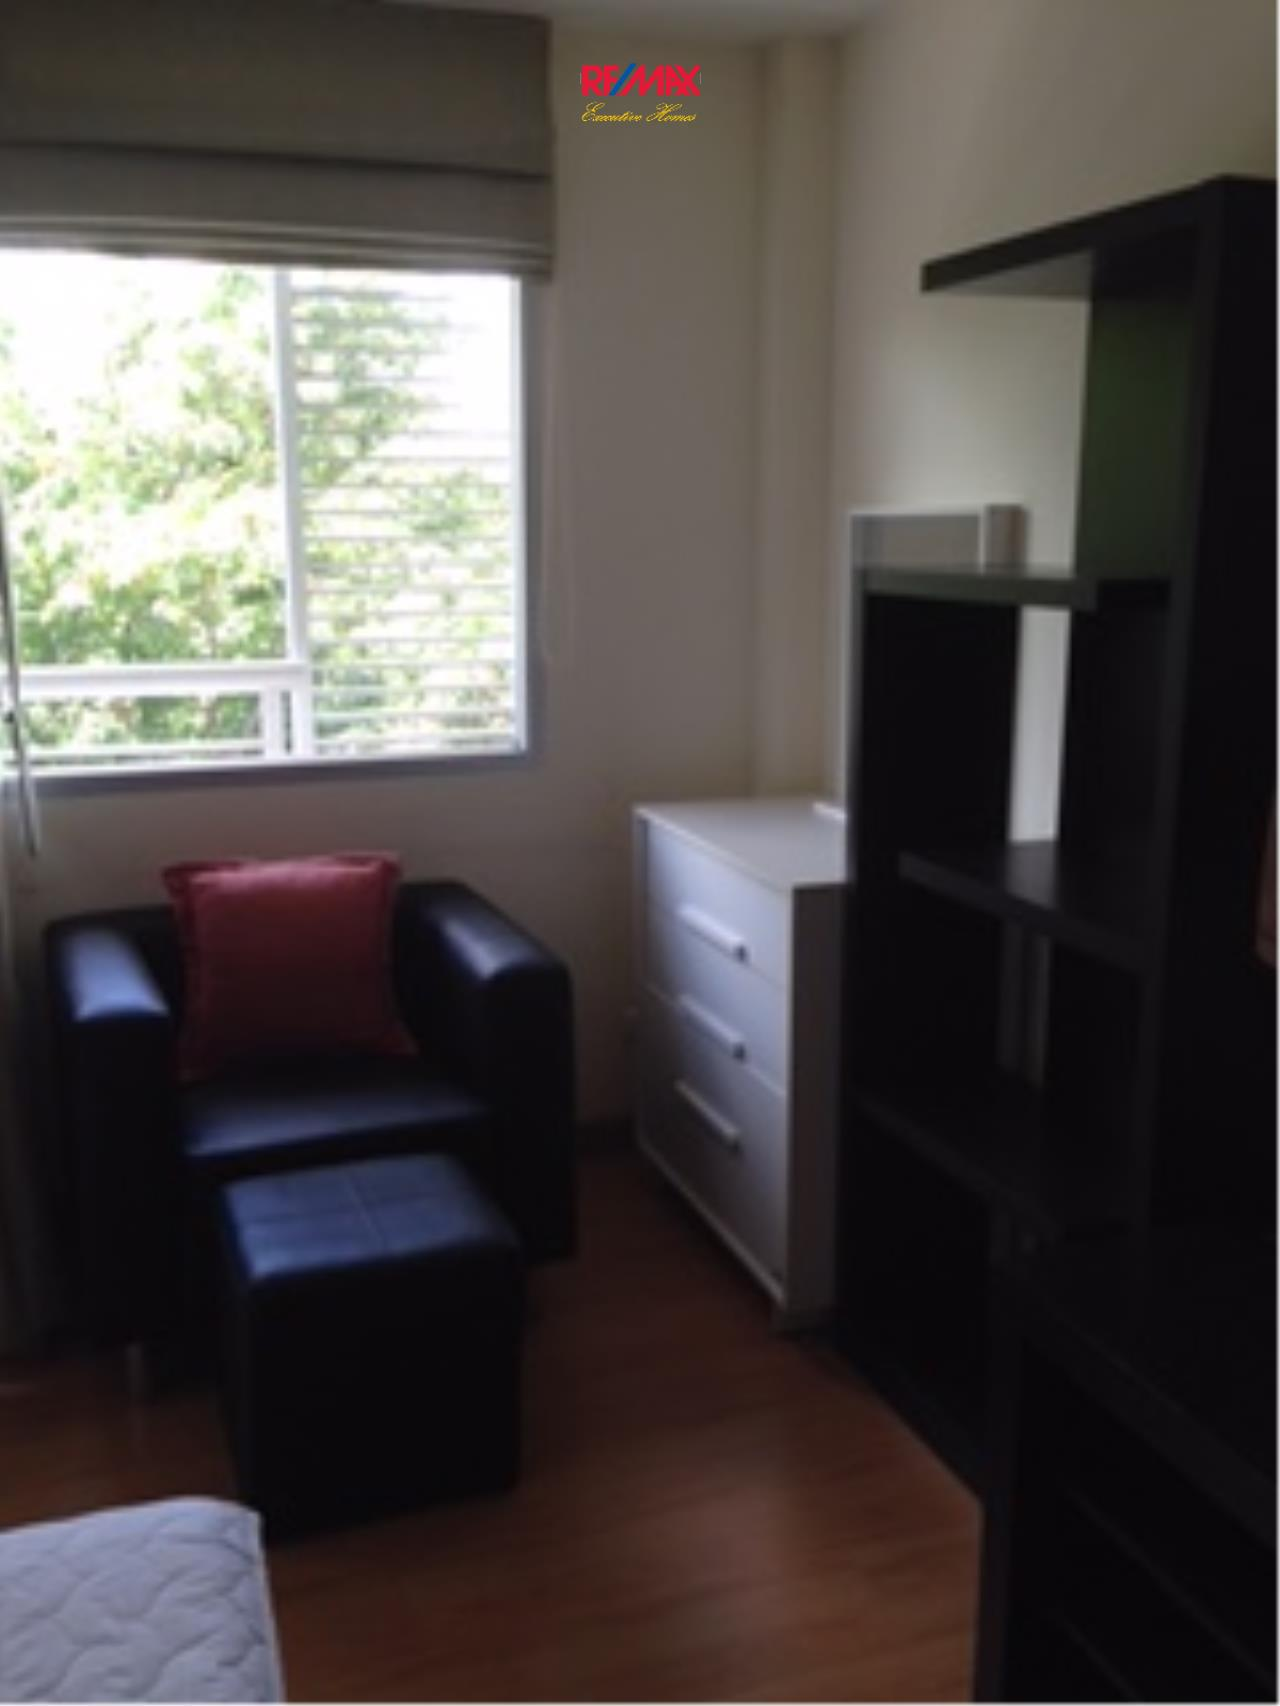 RE/MAX Executive Homes Agency's Nice 1 Studio type Bedroom for Rent The Link 50 2